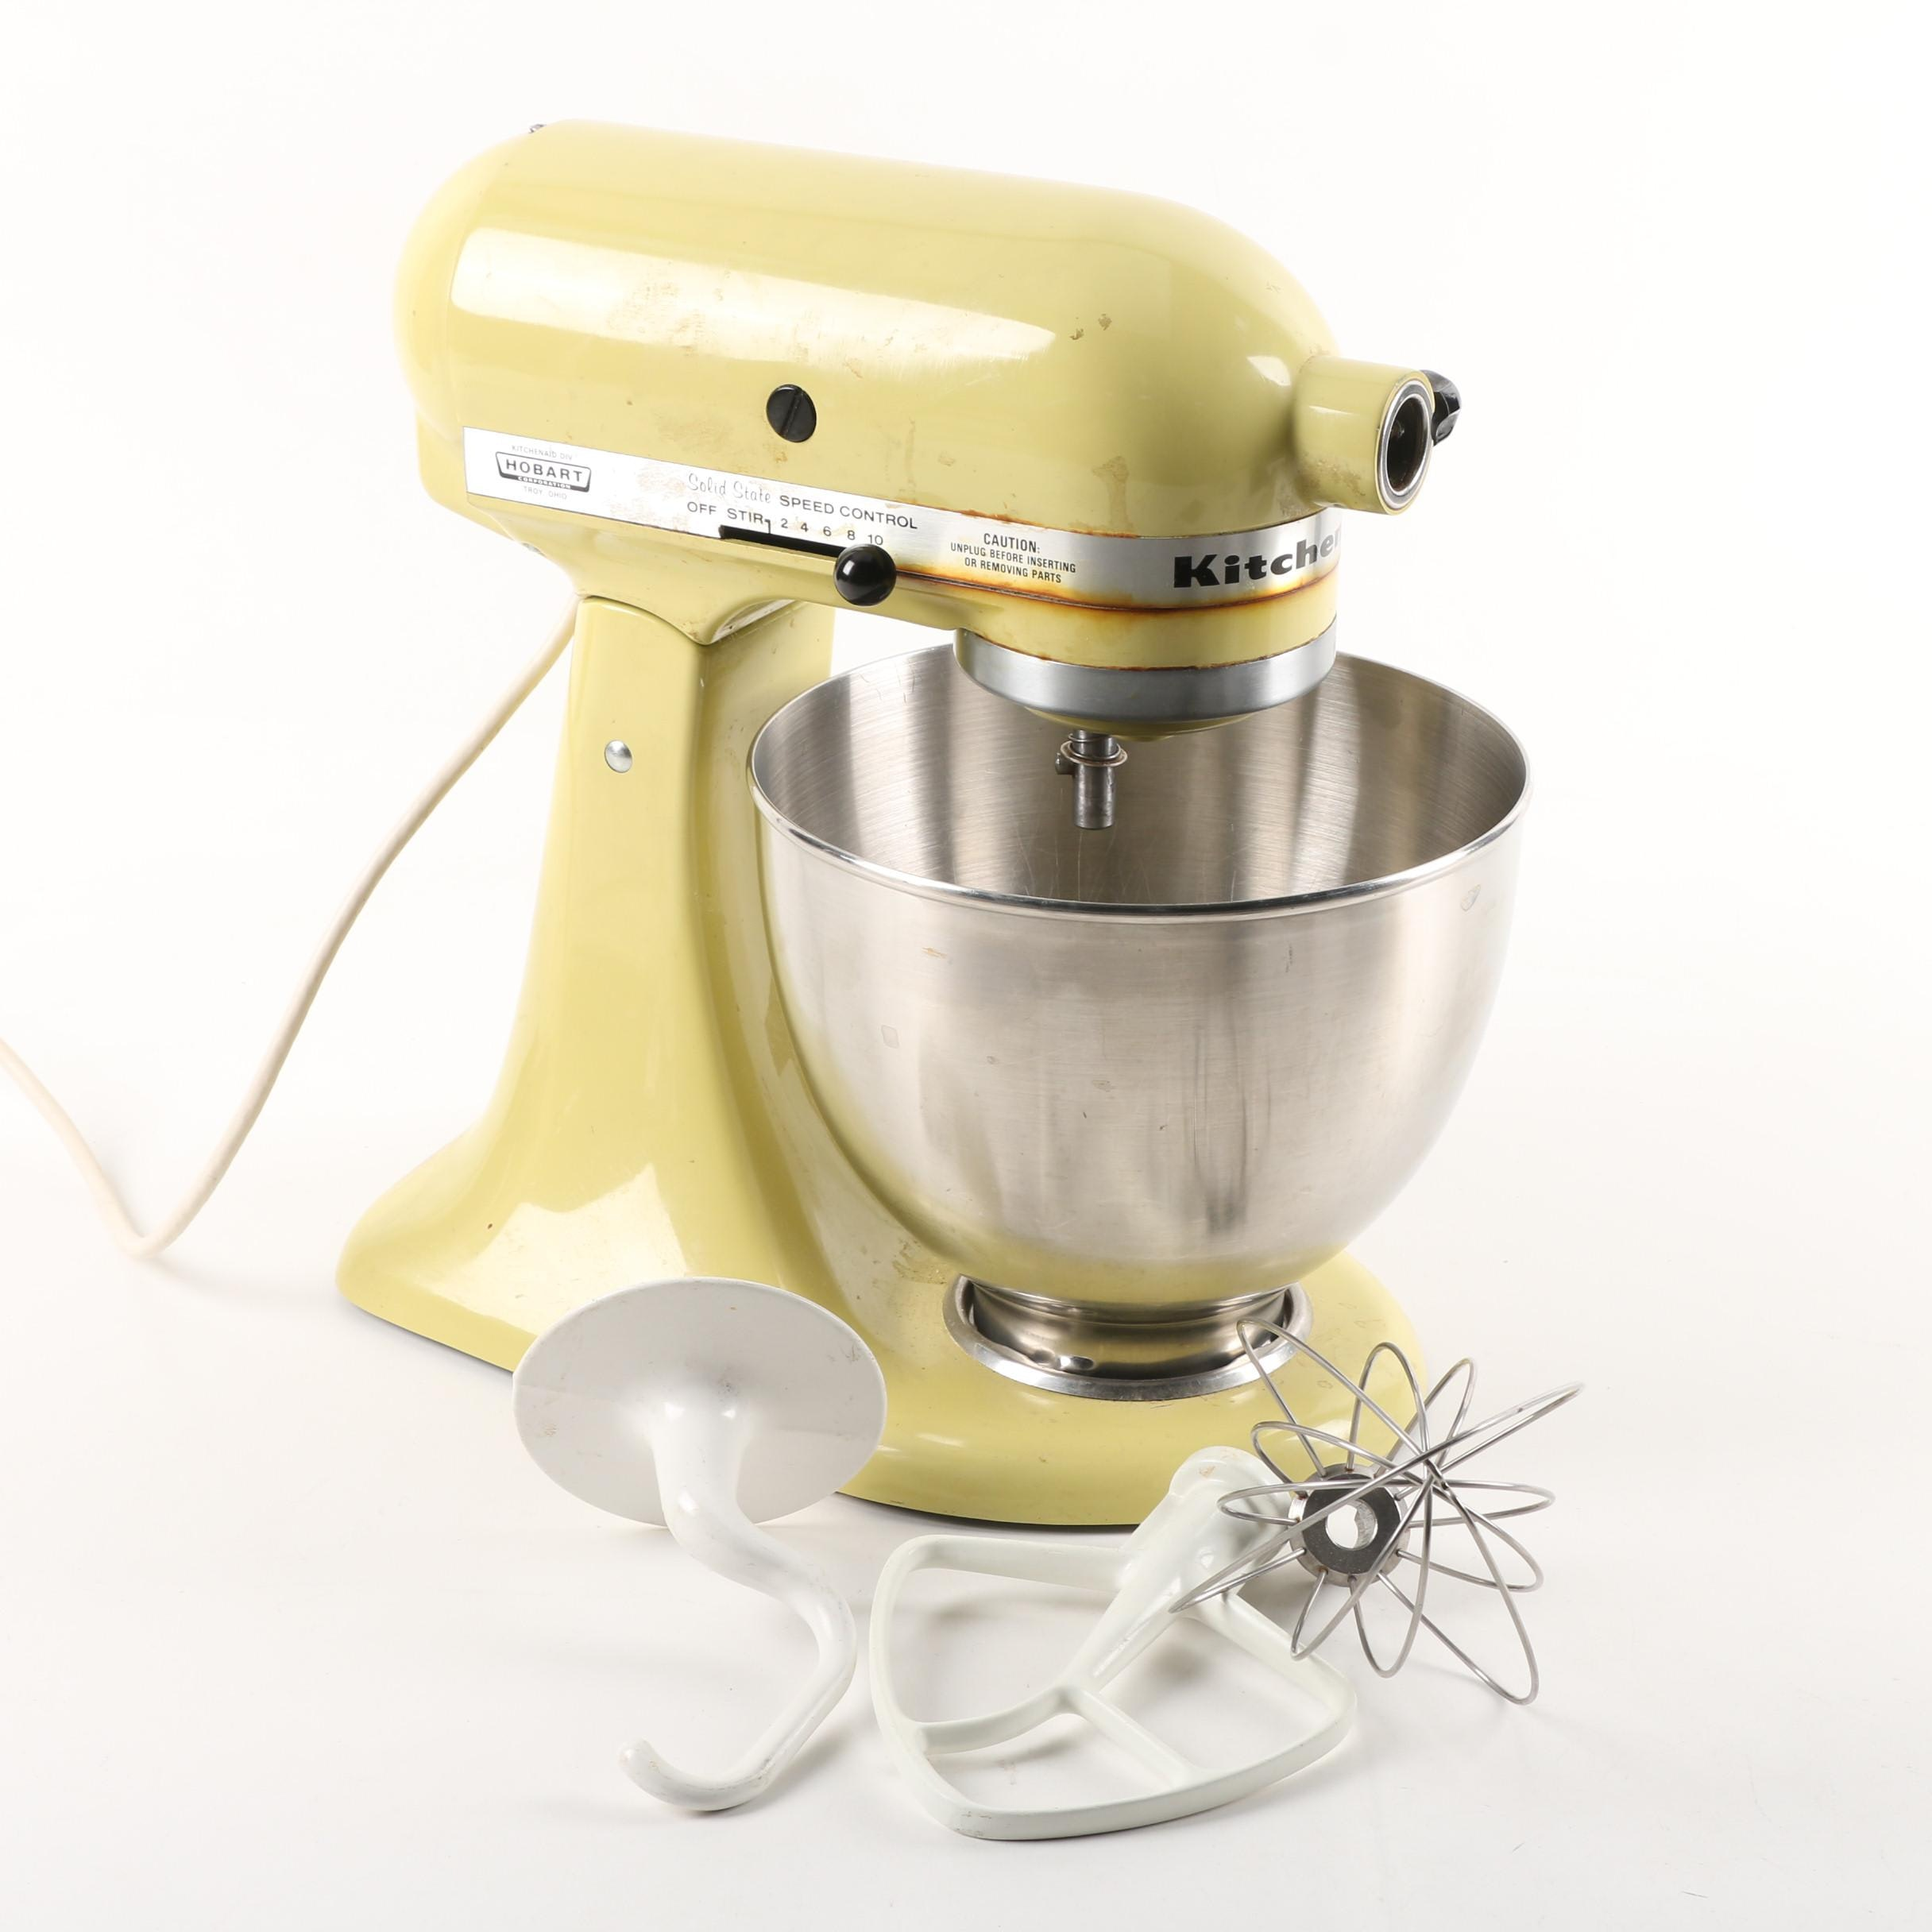 KitchenAid Model K45SS Stand Mixer in Yellow